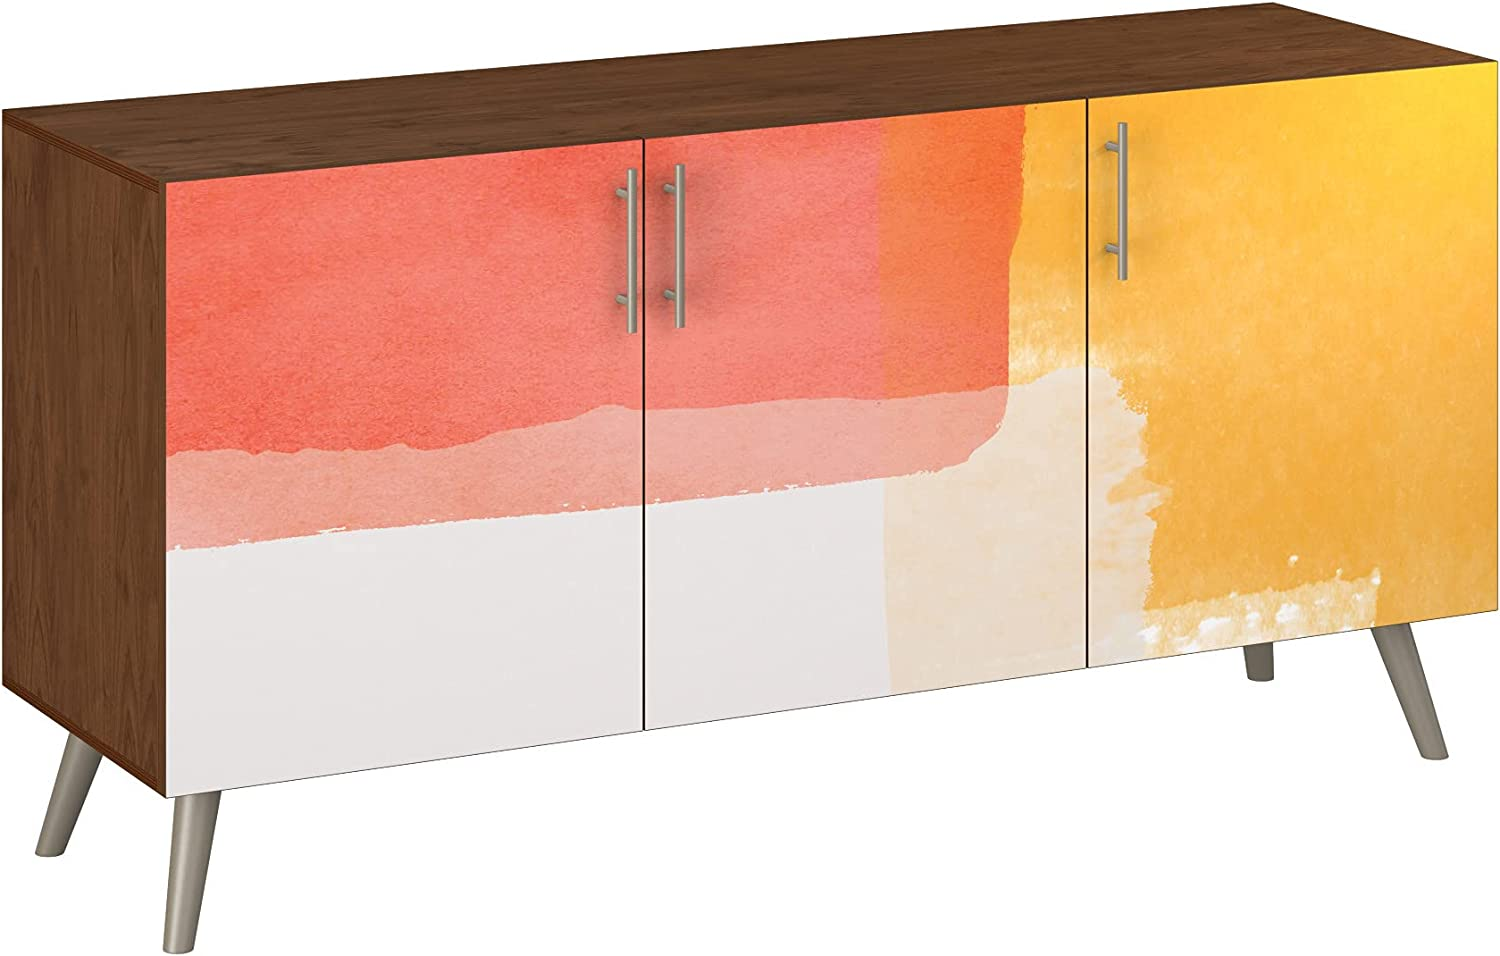 Poppy Sideboard - Walnut Velma Design Styl Base 5 Colors Ranking TOP10 Our shop most popular in 11